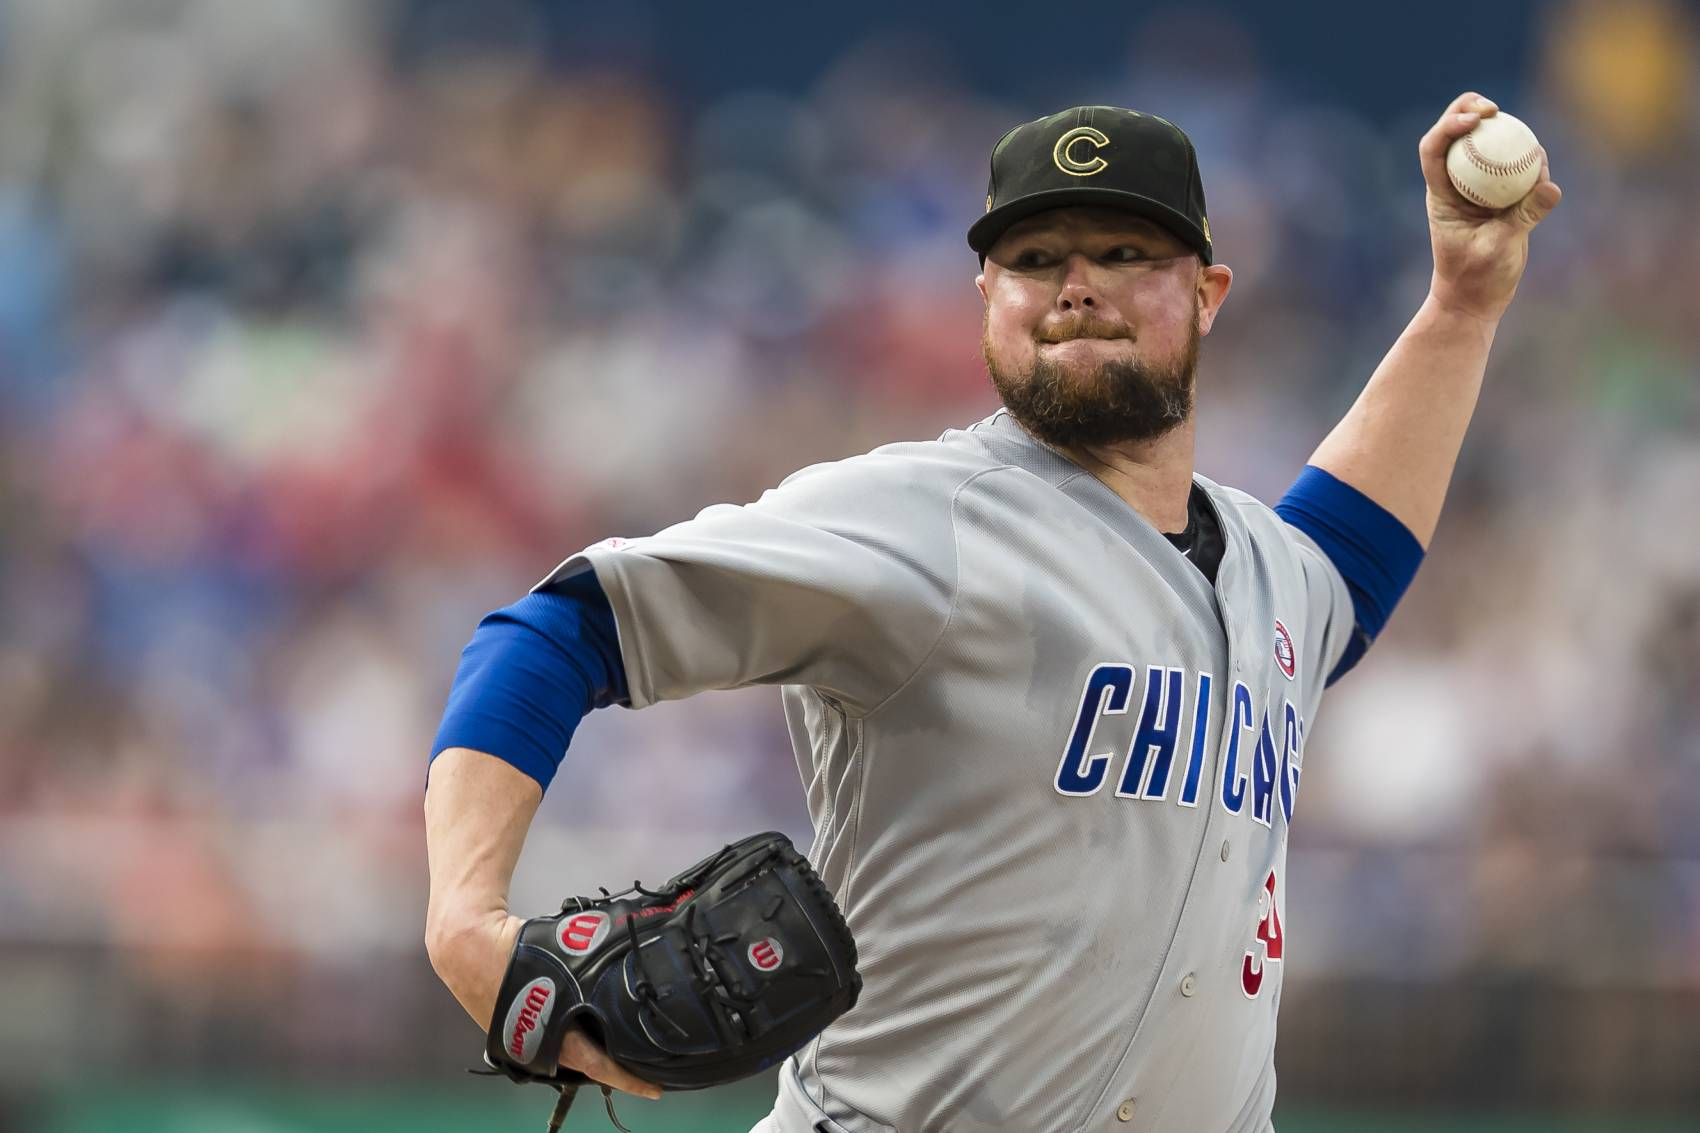 Chicago Cubs veteran left-hander Jon Lester has made nearly $200 million since he beat cancer.